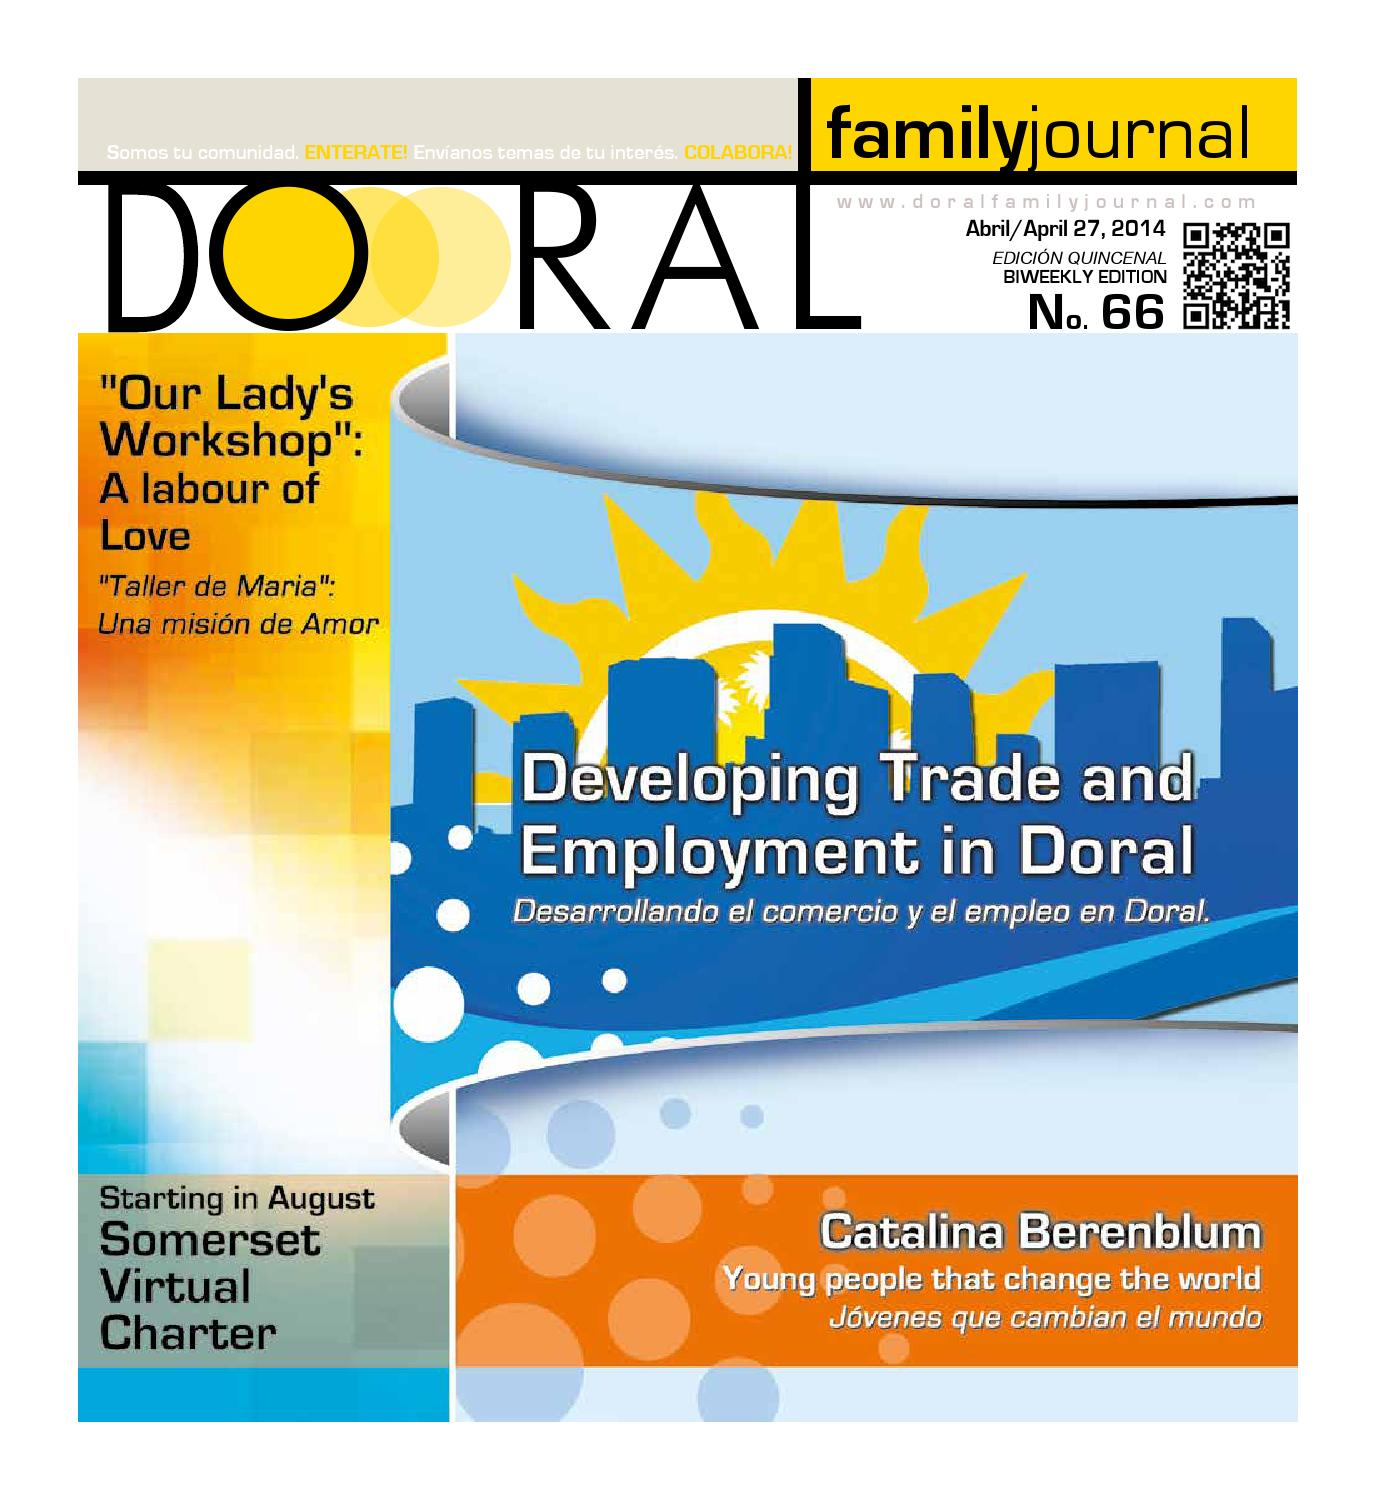 Doral family journal # 66 by DORAL FAMILY JOURNAL - issuu